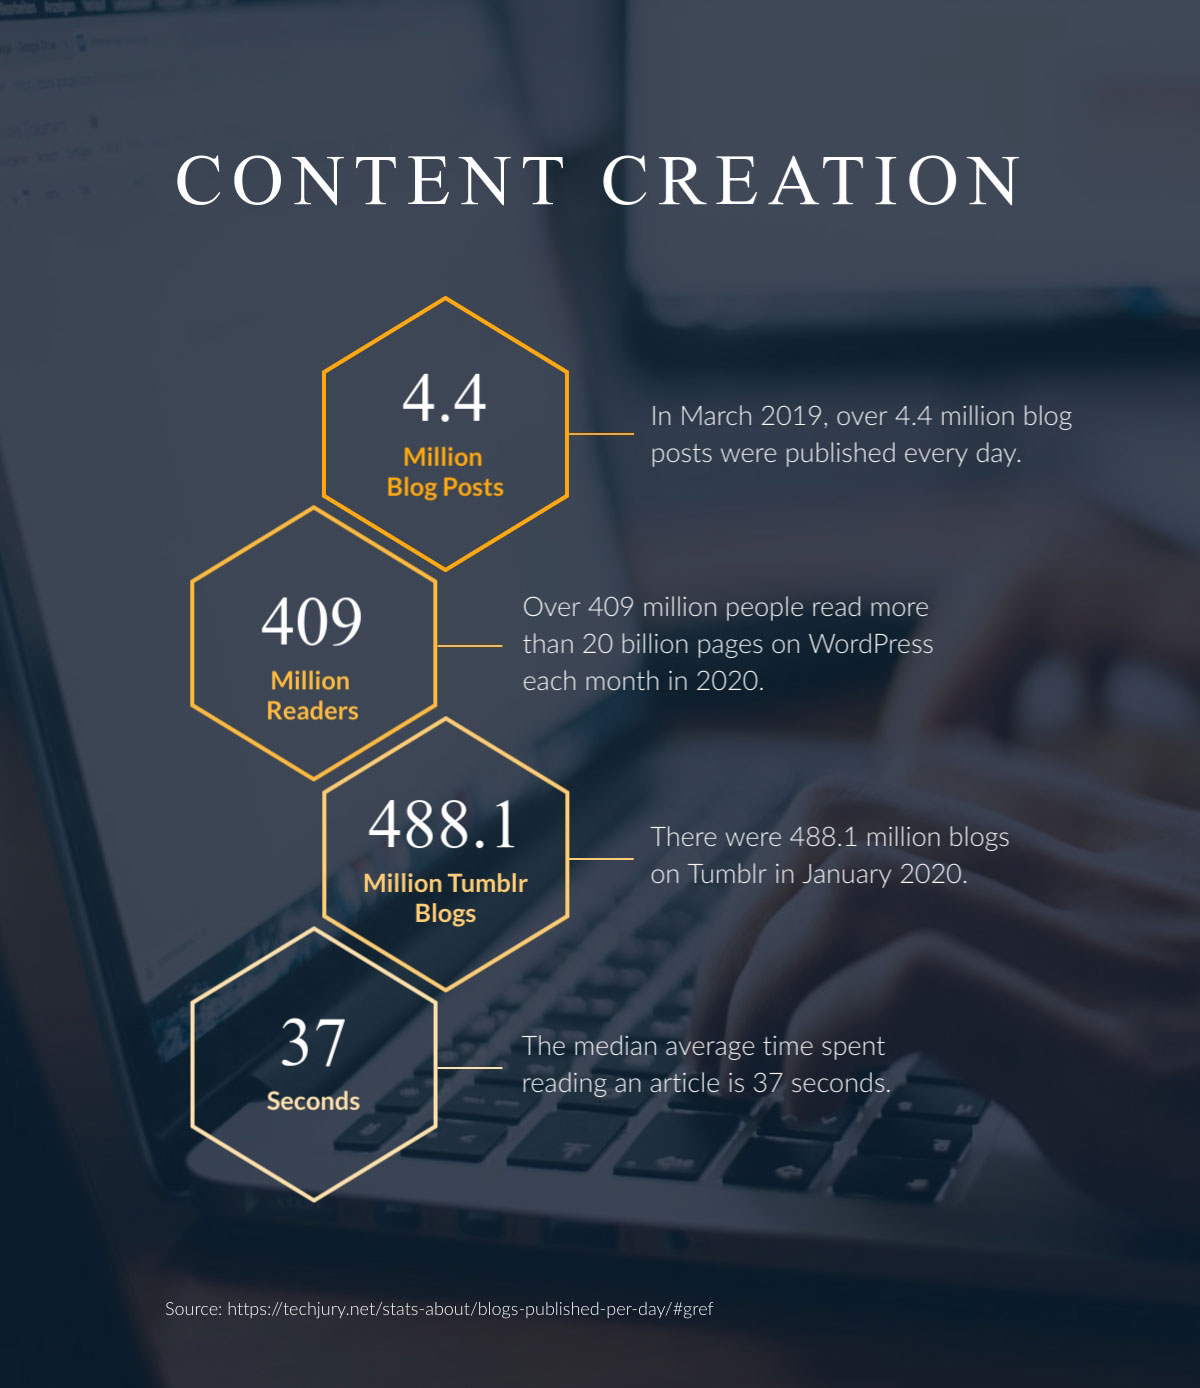 visual communication - content creation stats infographic